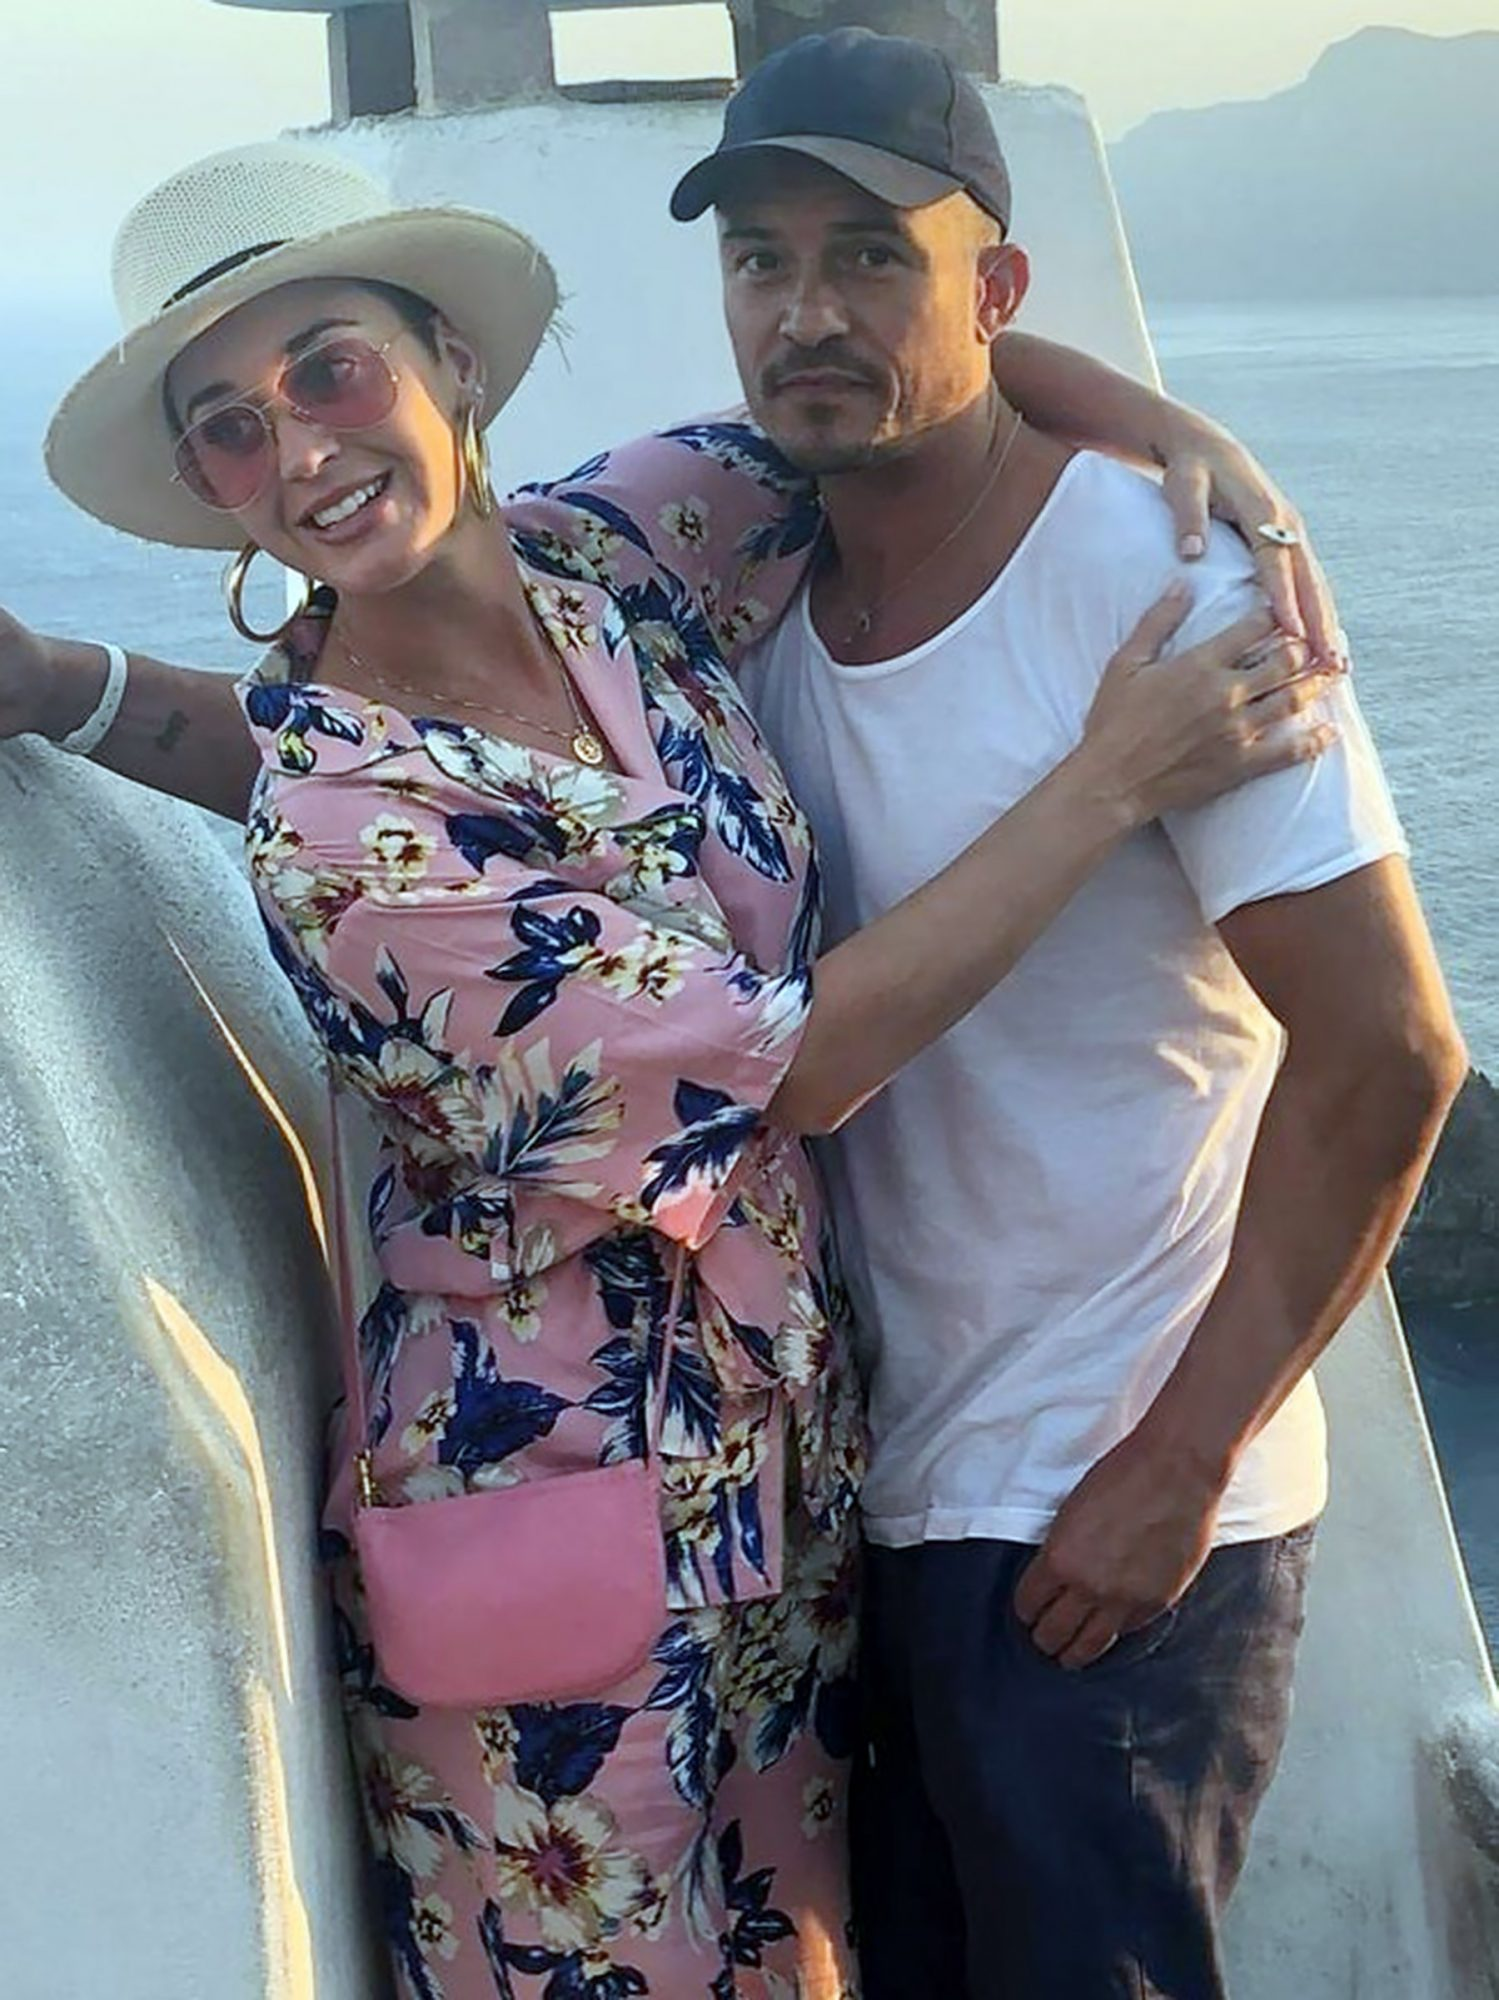 EXCLUSIVE: Orlando Bloom And Katy Perry Enjoy The Views In Greece